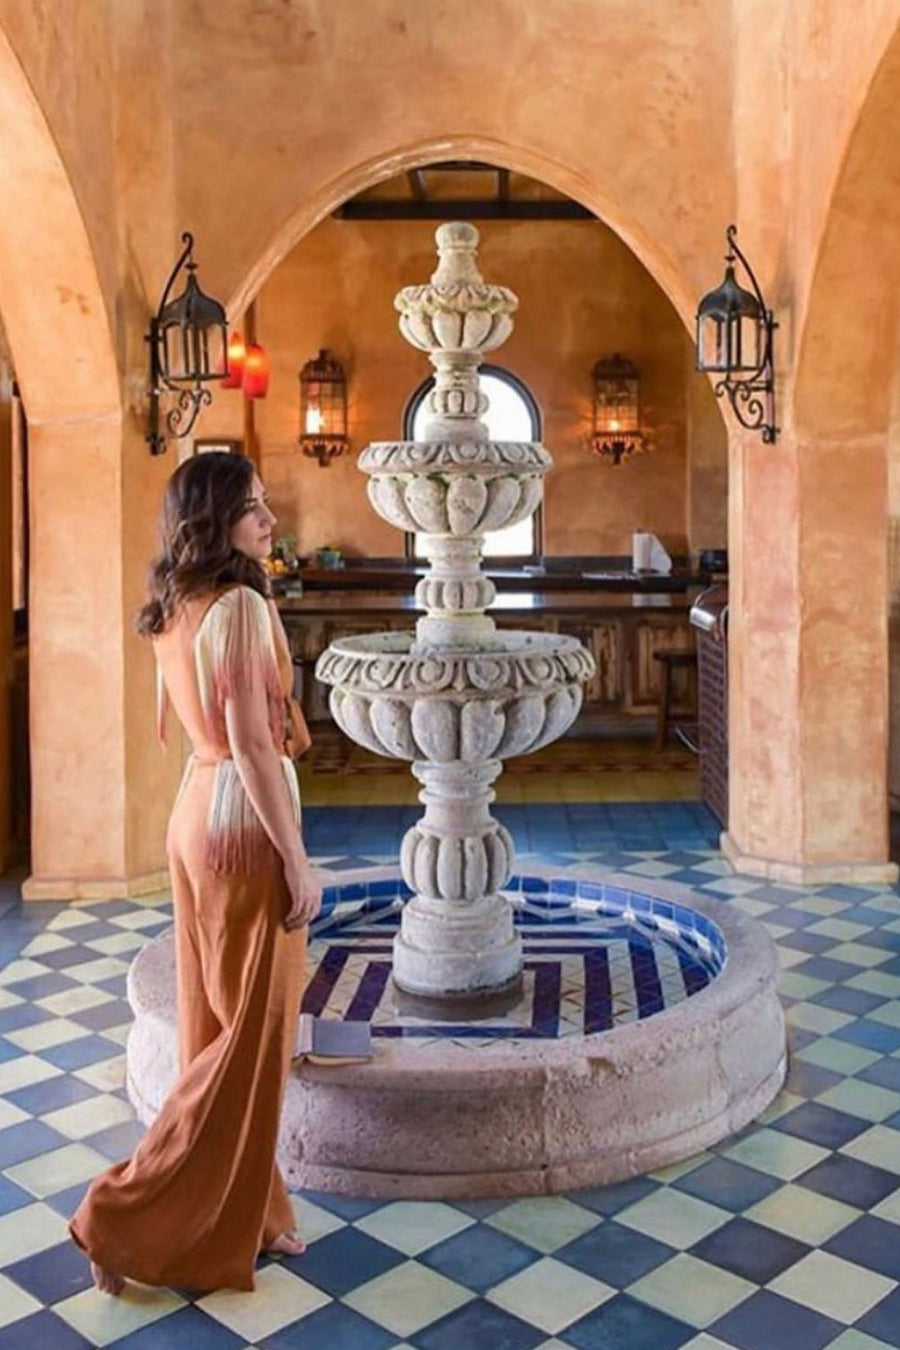 This is a photo of a woman wearing a 2 piece rust-colored linen top and pants with ombre fringe. She is in front of an indoor fountain structure on top of blue and white tile floors.